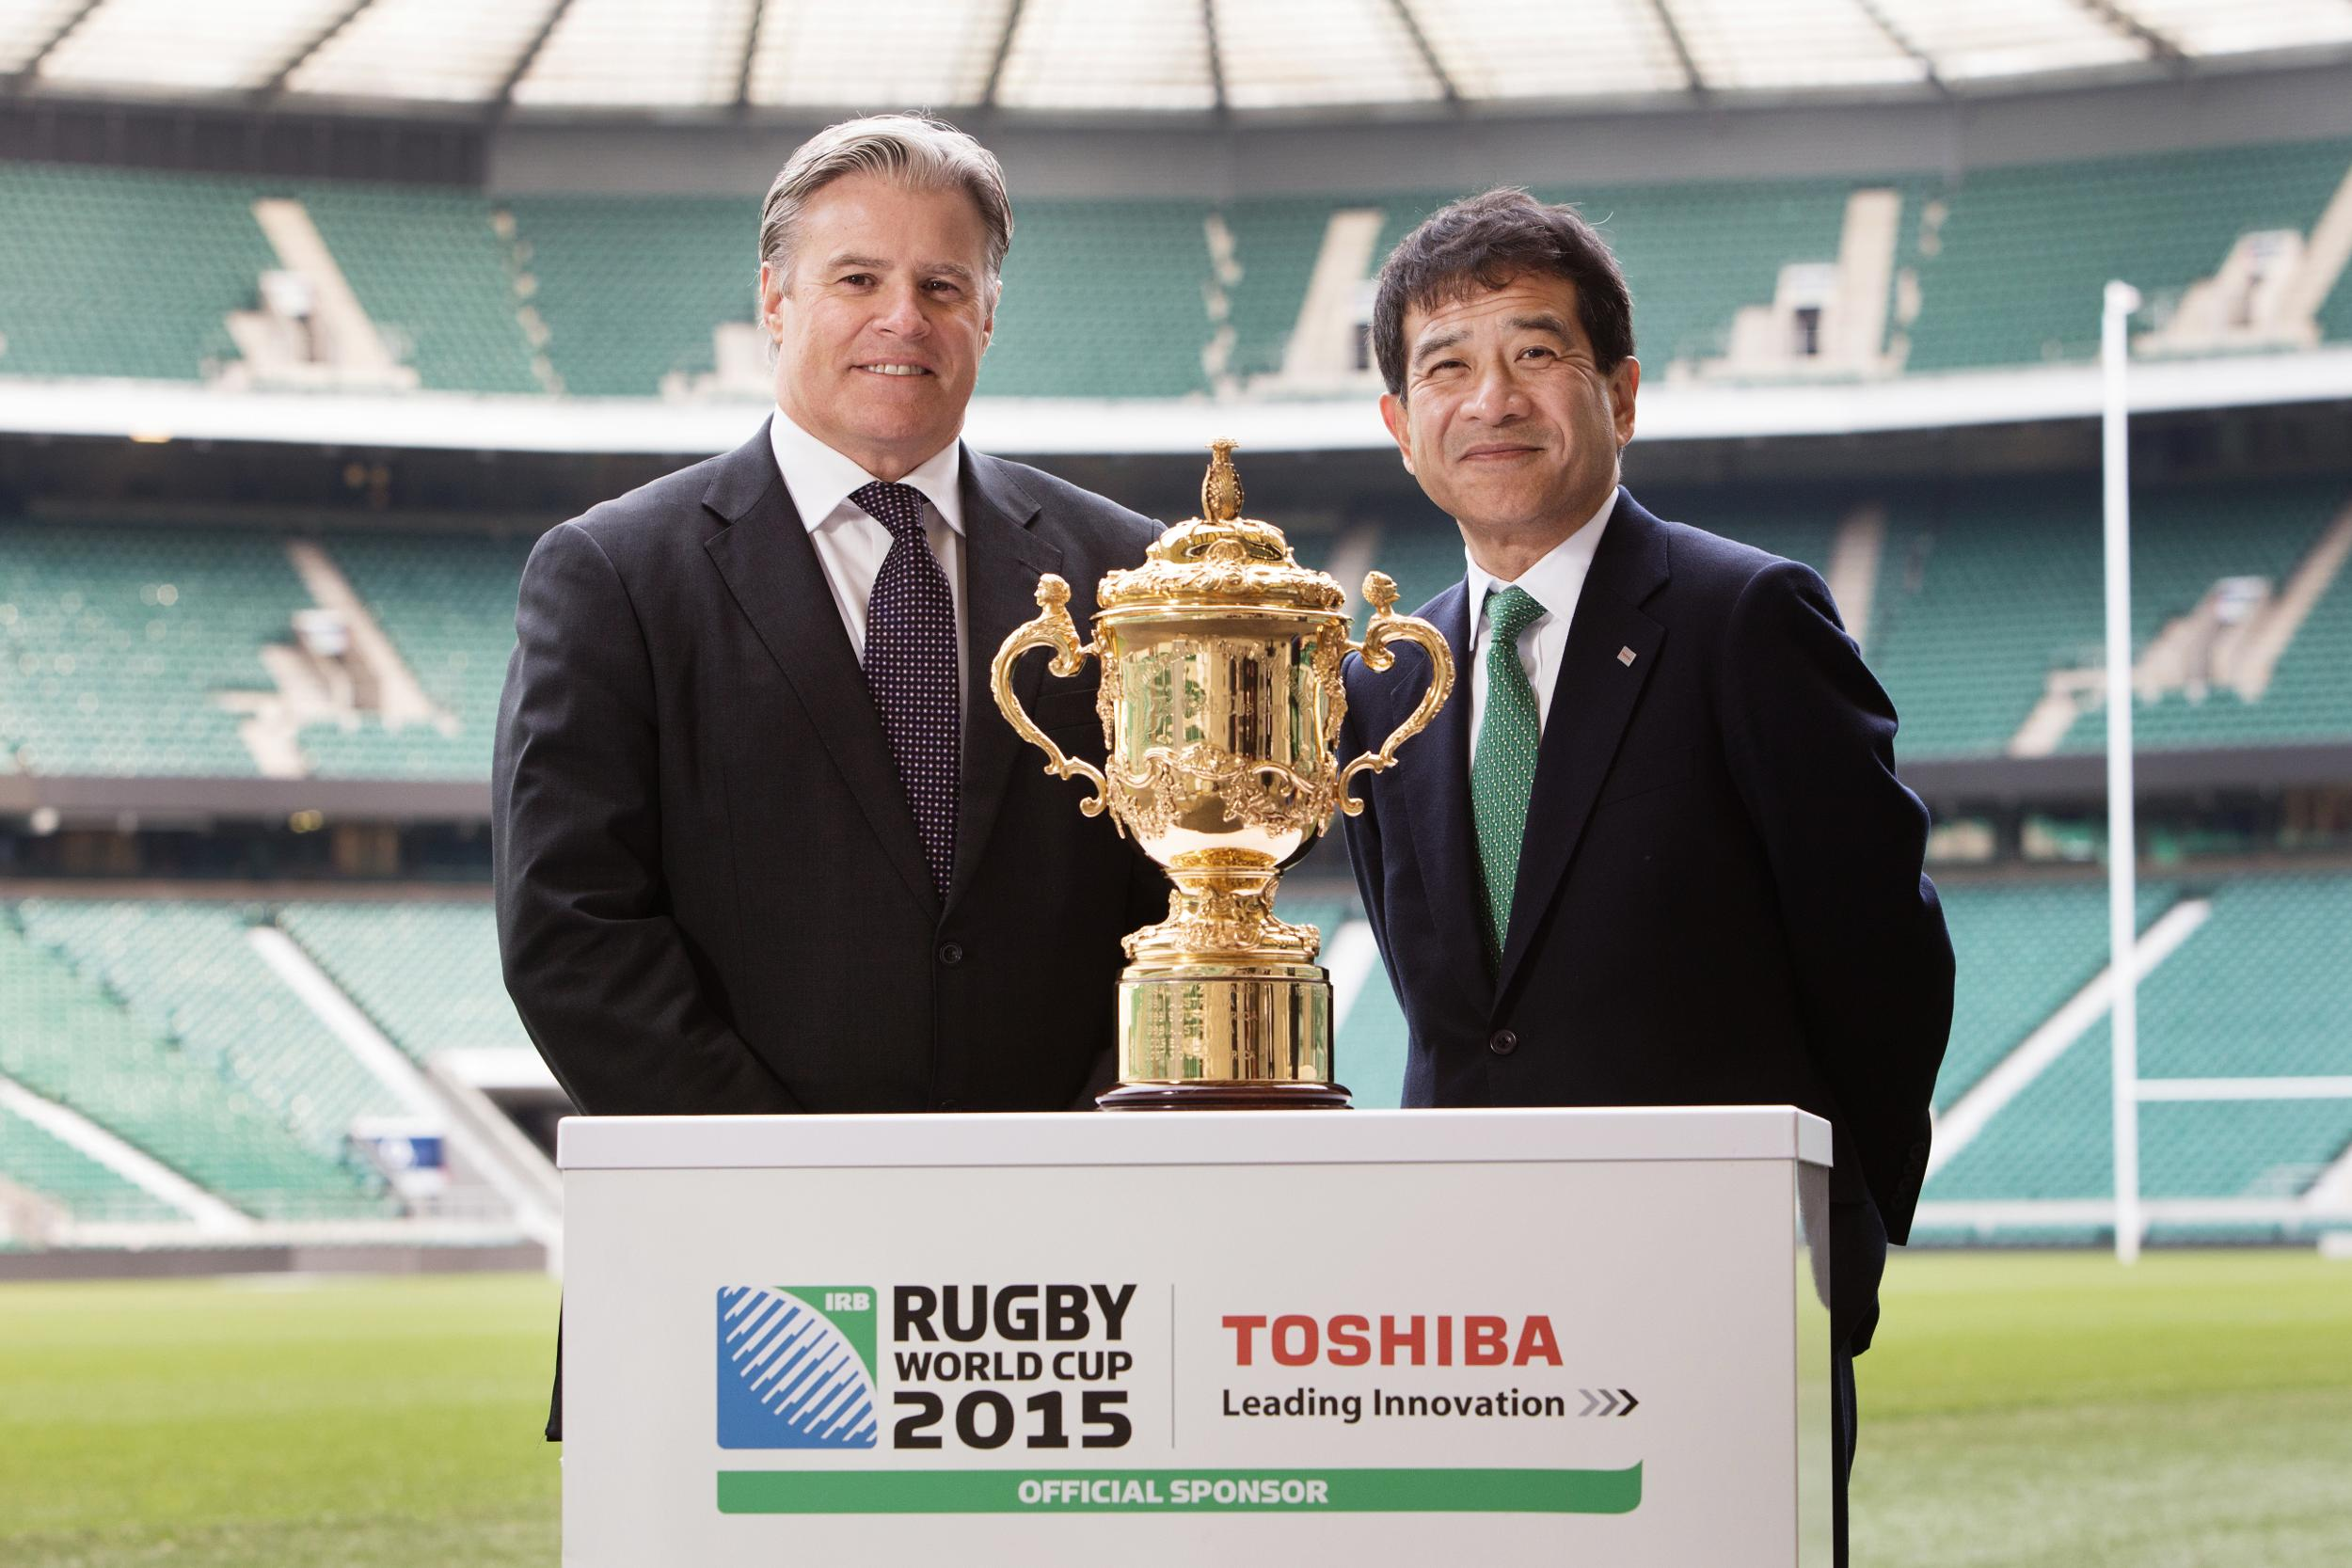 Toshiba have been announced as an official partner for England 2015